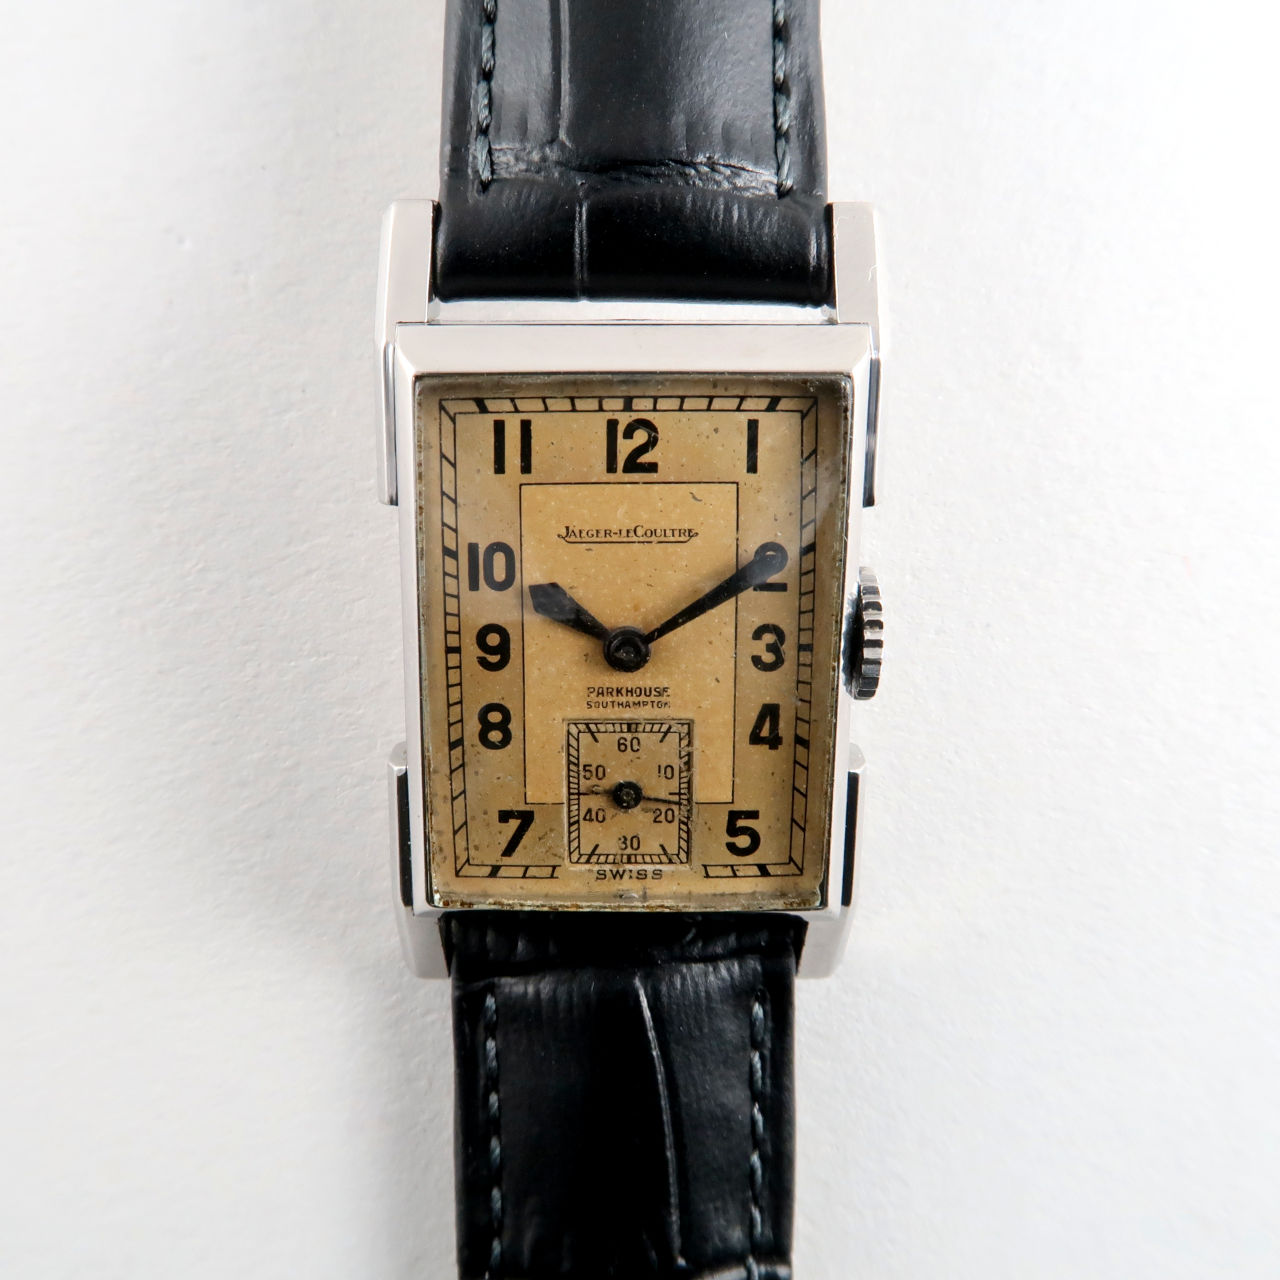 Jaeger-LeCoultre Cal. 410 retailed by Parkhouse Southampton circa 1937